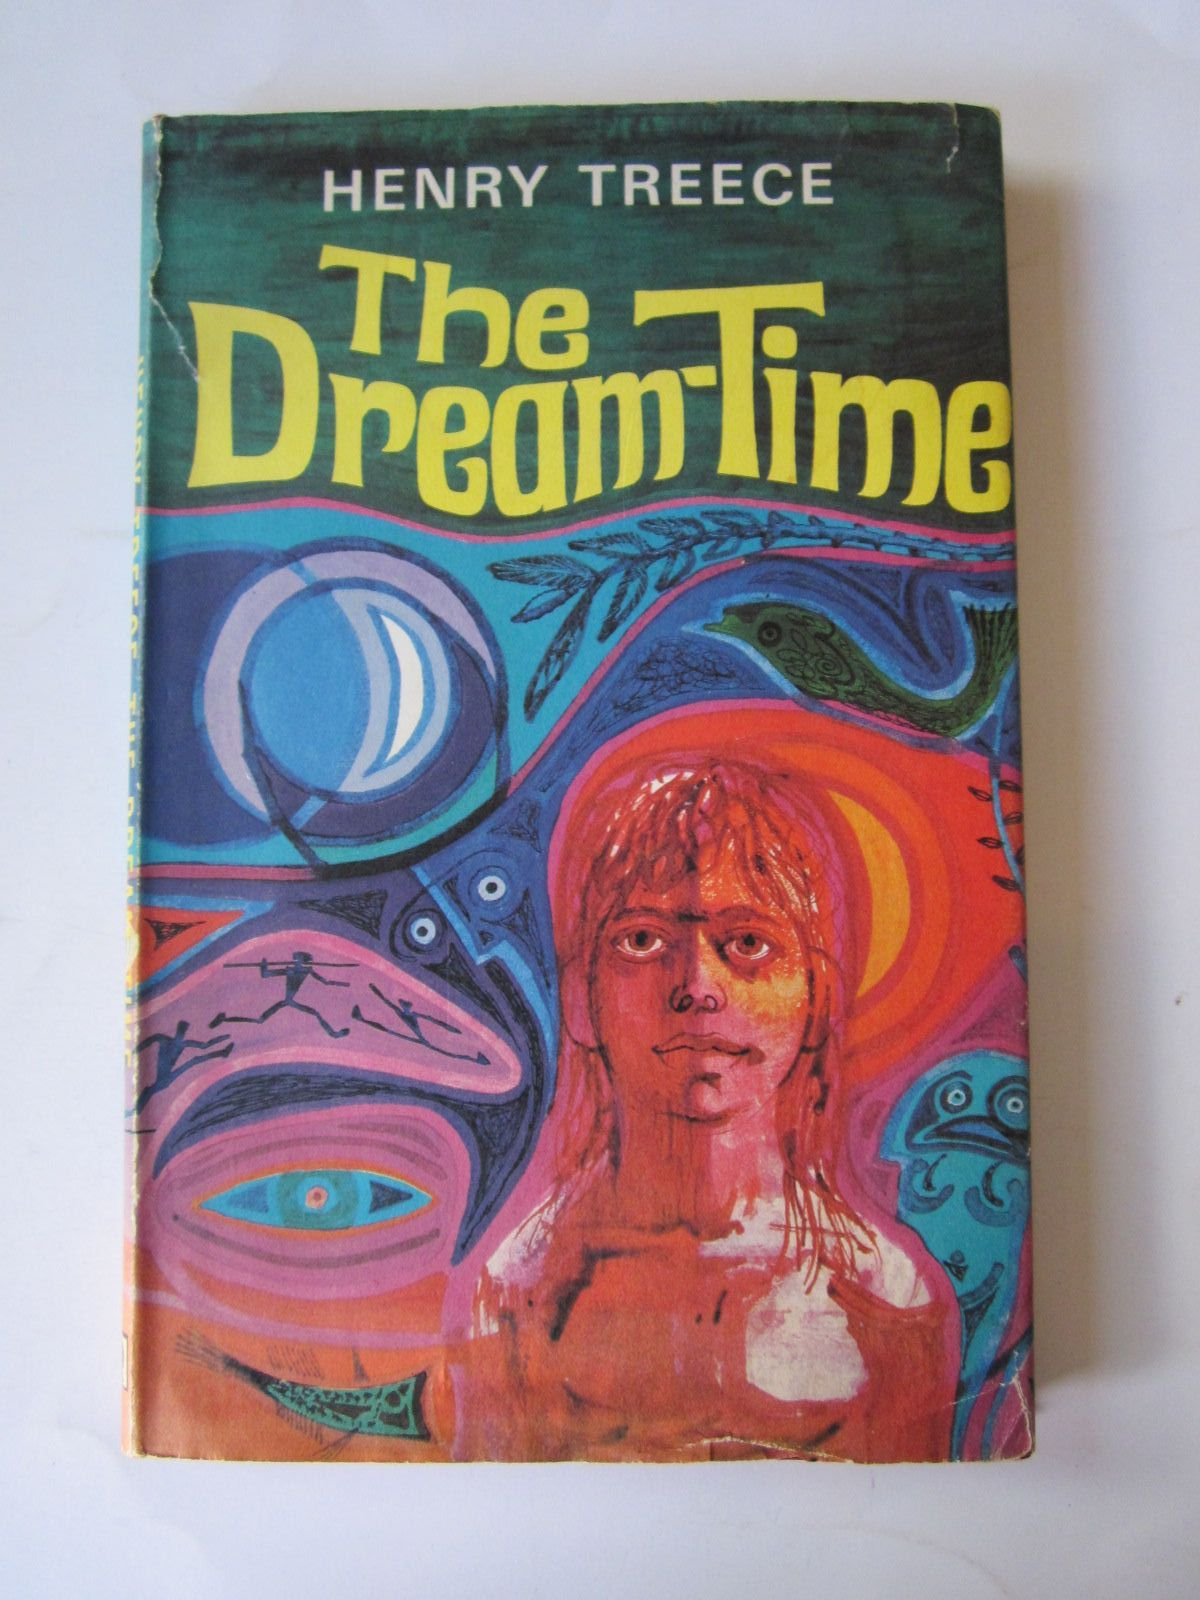 Photo of THE DREAM-TIME written by Treece, Henry illustrated by Keeping, Charles published by Brockhampton Press (STOCK CODE: 1308674)  for sale by Stella & Rose's Books